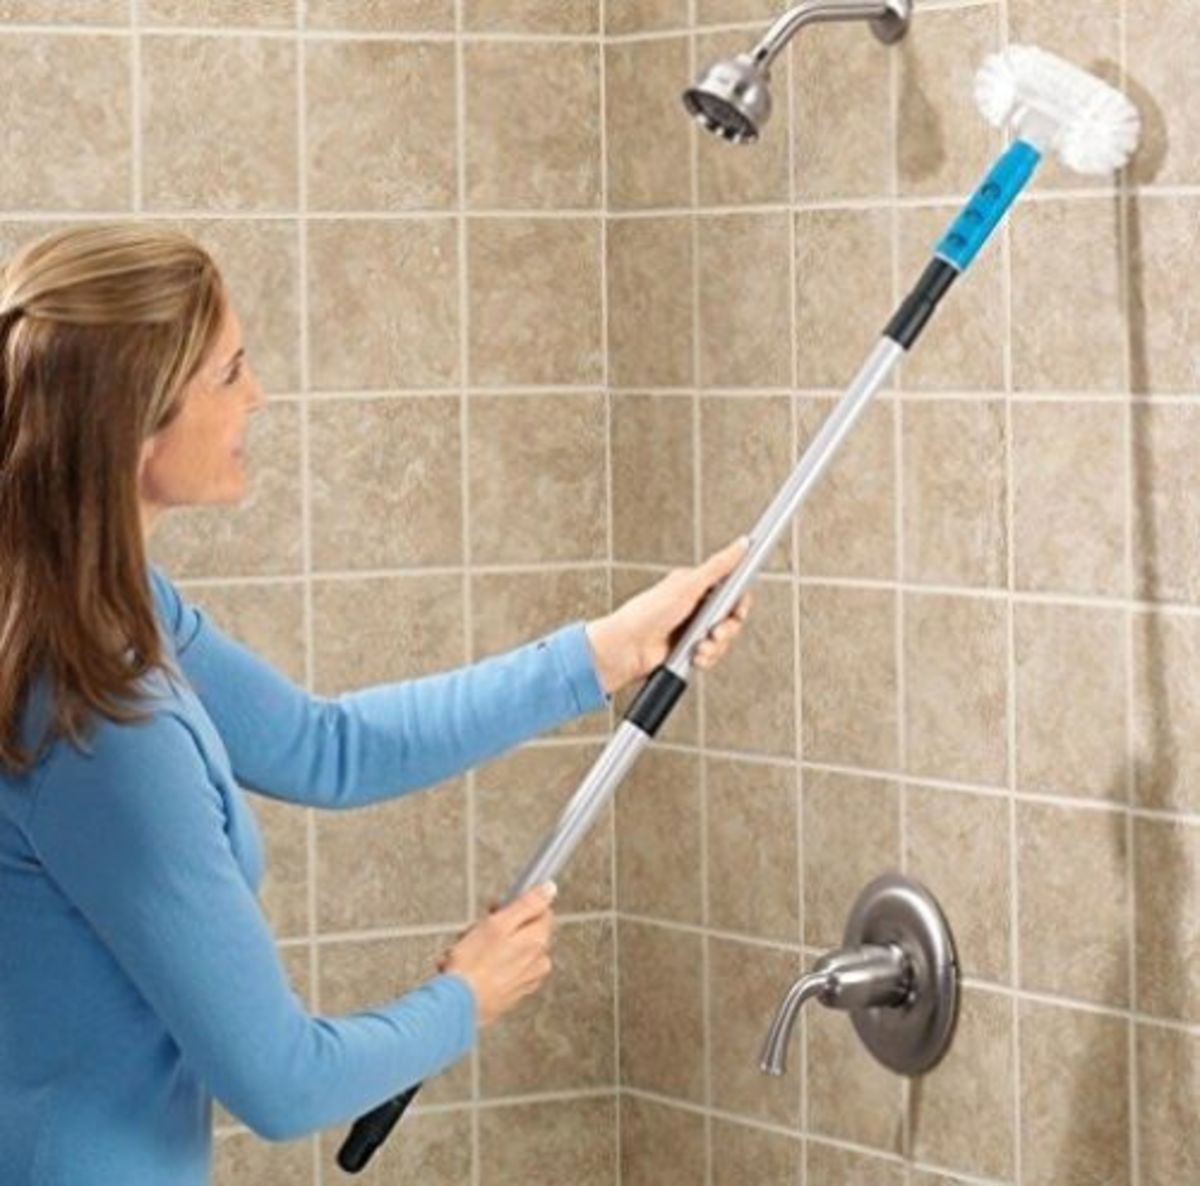 A telescopic bathroom tile scrub brush is easier and quicker to clean the shower stall.